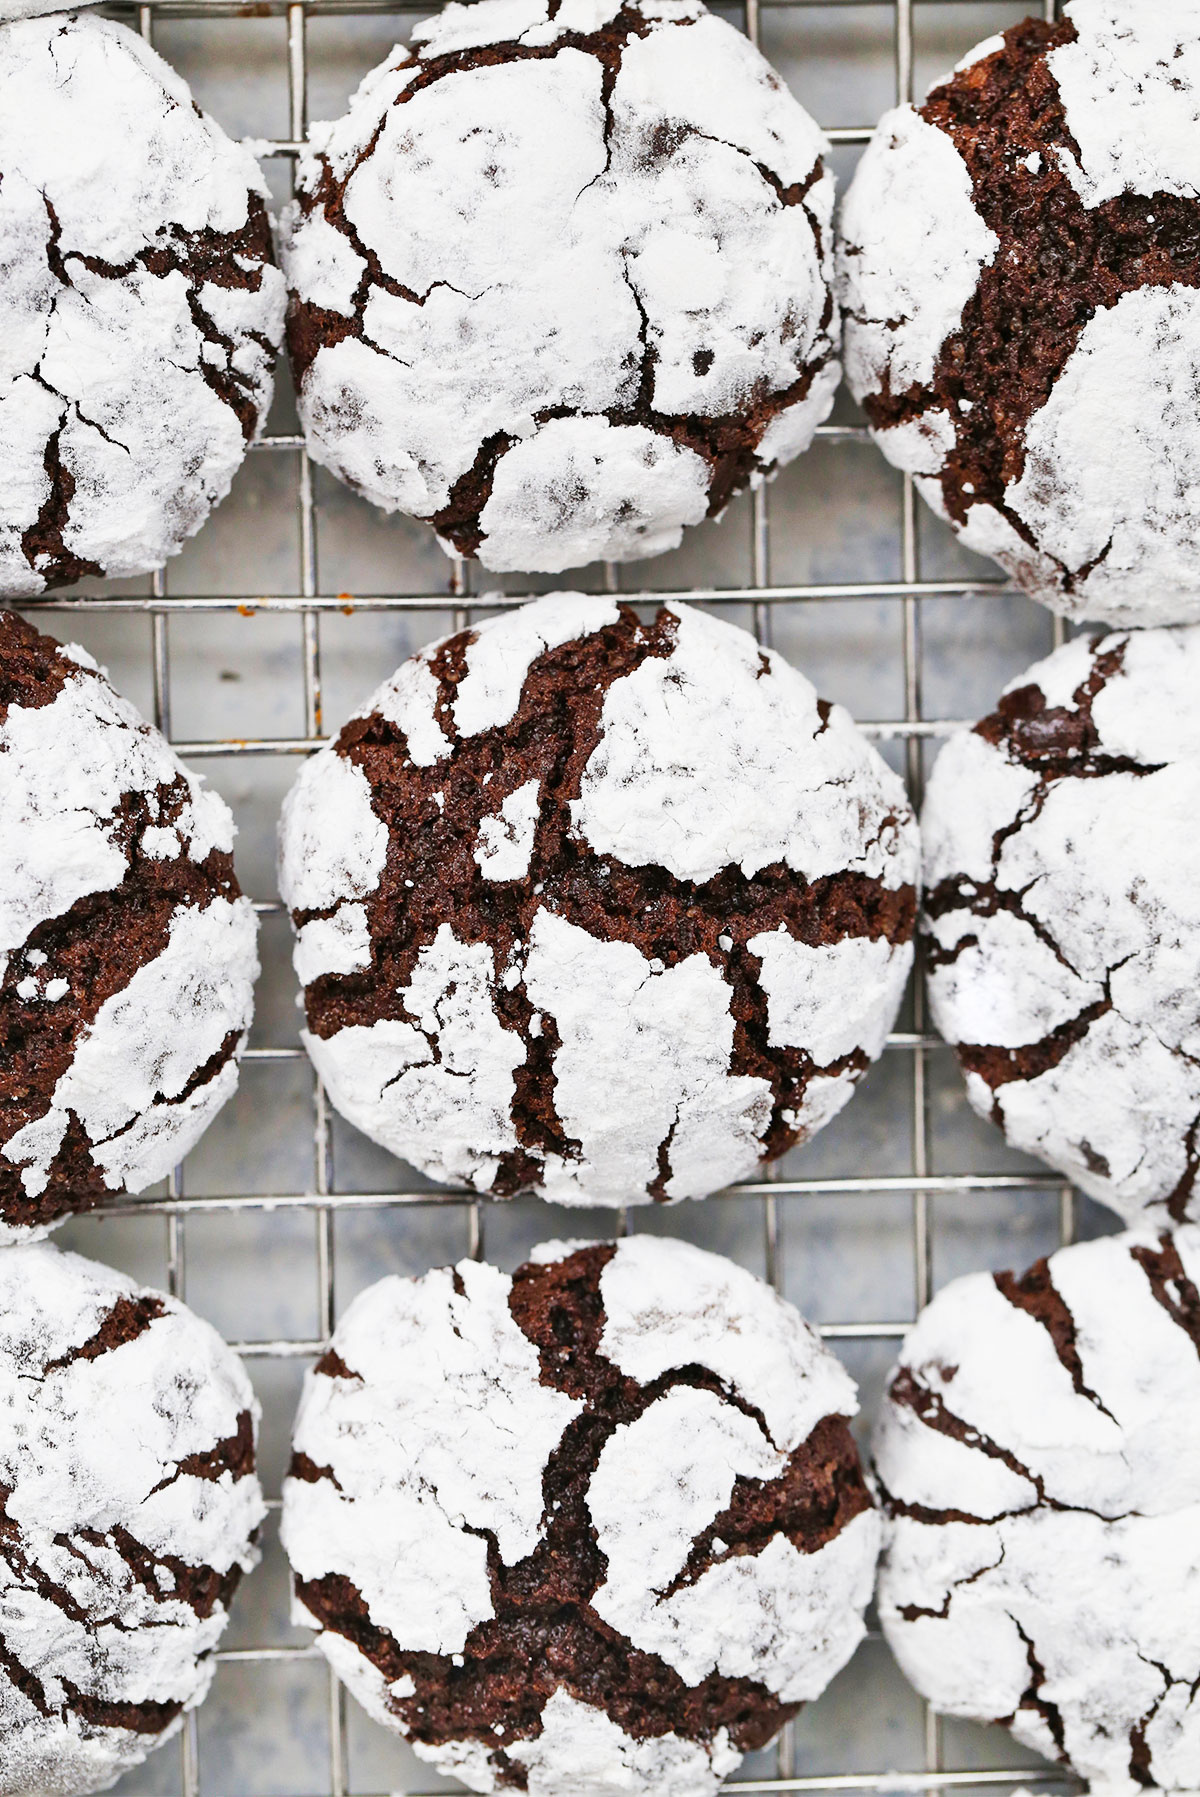 Overhead view of Gluten Free Chocolate Crinkle Cookies from One Lovely Life